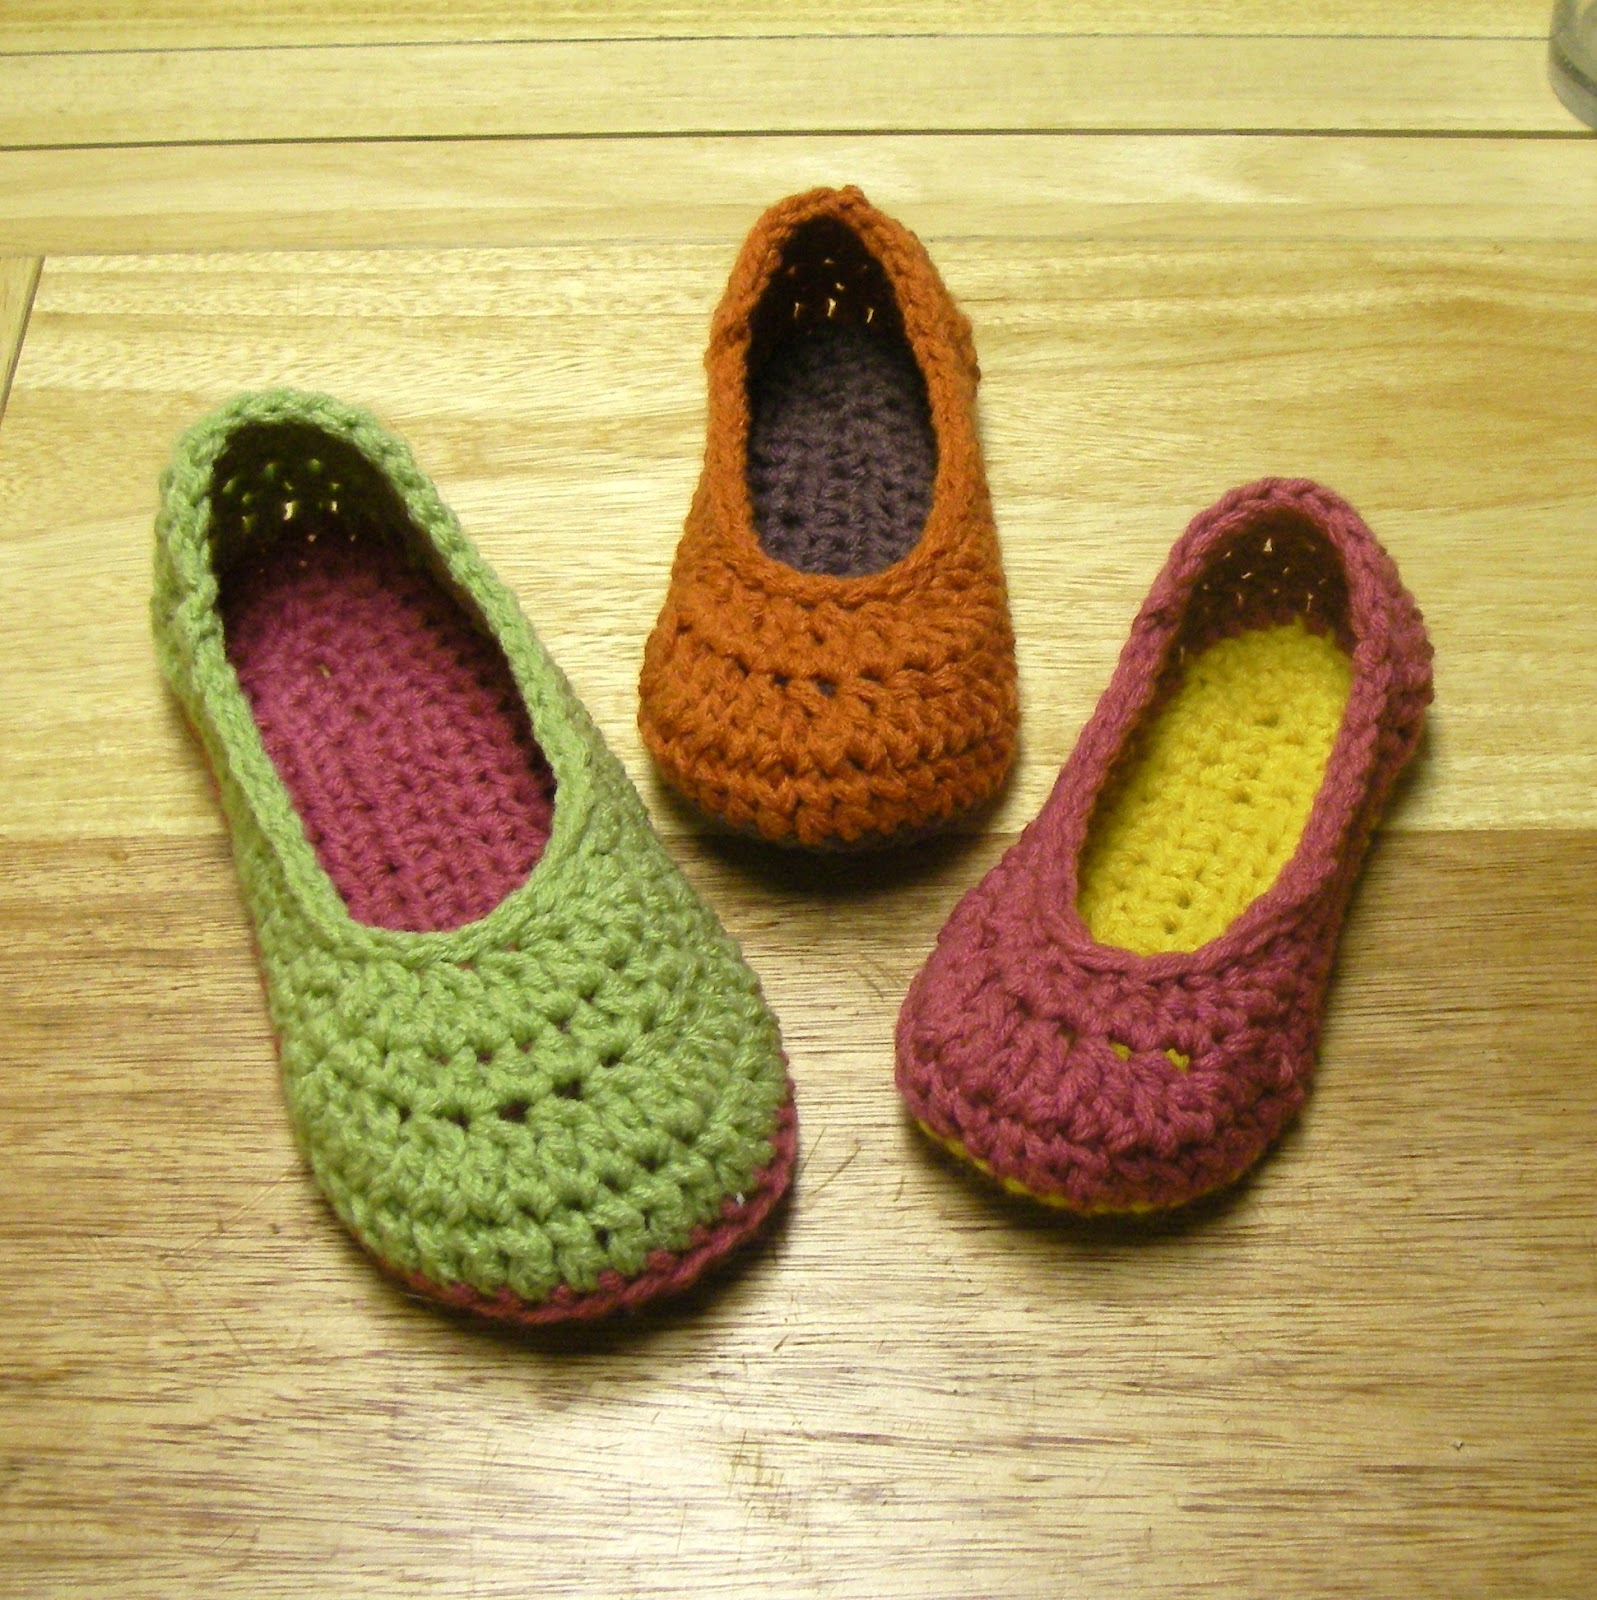 Crochet Slippers : ... has been moved to MAMACHEE.COM: Crocheting and more crocheting